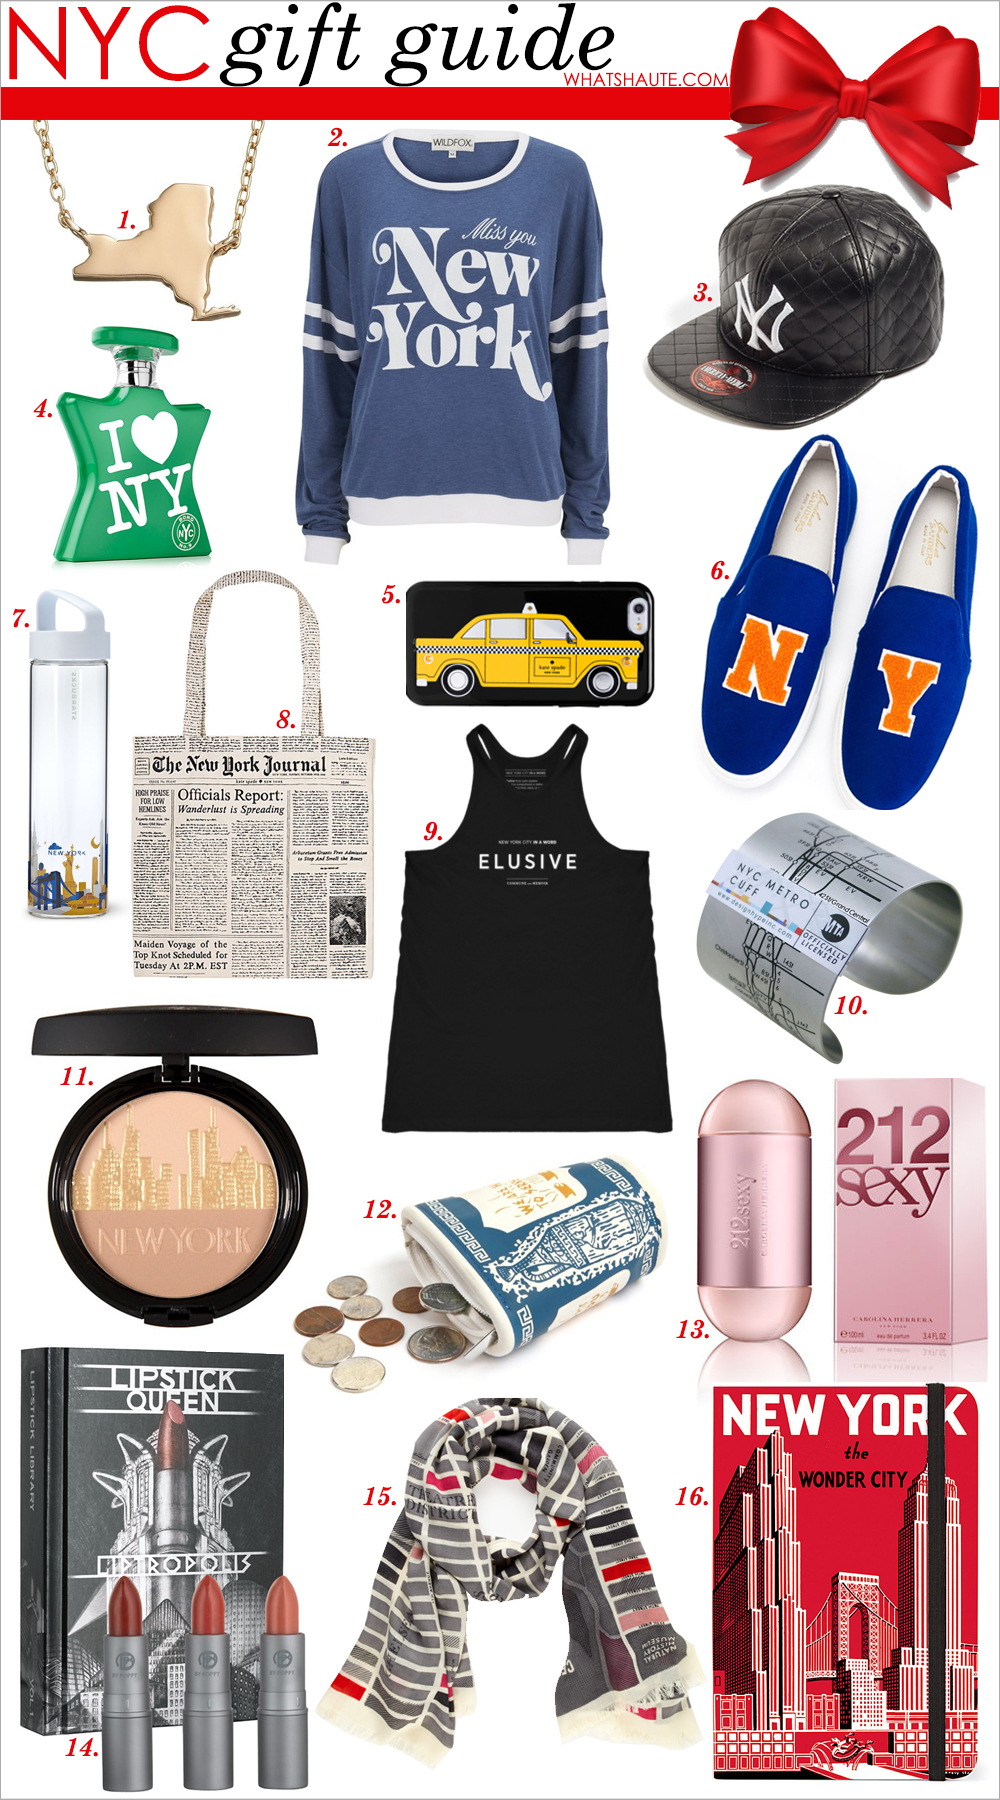 Holiday 2015: NYC Gift Guide, New York City, New York, Holiday gifts, NY 14k Gold Over Silver State Necklace, Wildfox New York Moonlight Sweatshirt - East Hampton, American Needle 'New York Yankees Quilted' Faux Leather Snapback Cap, Bond No.9 I Love New York For Earth Day Eau de Parfum, kate spade new york taxi iphone 6 case, Joshua Sanders NY slip-on sneakers, Starbucks You Are Here Collection Water Bottle - New York, 18.5 fl oz, kate spade new york Headlines Canvas Tote, Commune and Memoir Elusive Deep Tank, New York In A Word - Elusive, Designhype NYC Metro Cuff, Physicians Formula City Glow Daily Defense Bronzer, Kikkerland Lucky Beggar Wallet, 212 Sexy by Carolina Herrera 3.4 oz Eau de Toilette, Lipstick Queen Liptropolis Vol 1, kate spade new york girl about town scarf, Cavallini New York City Journal